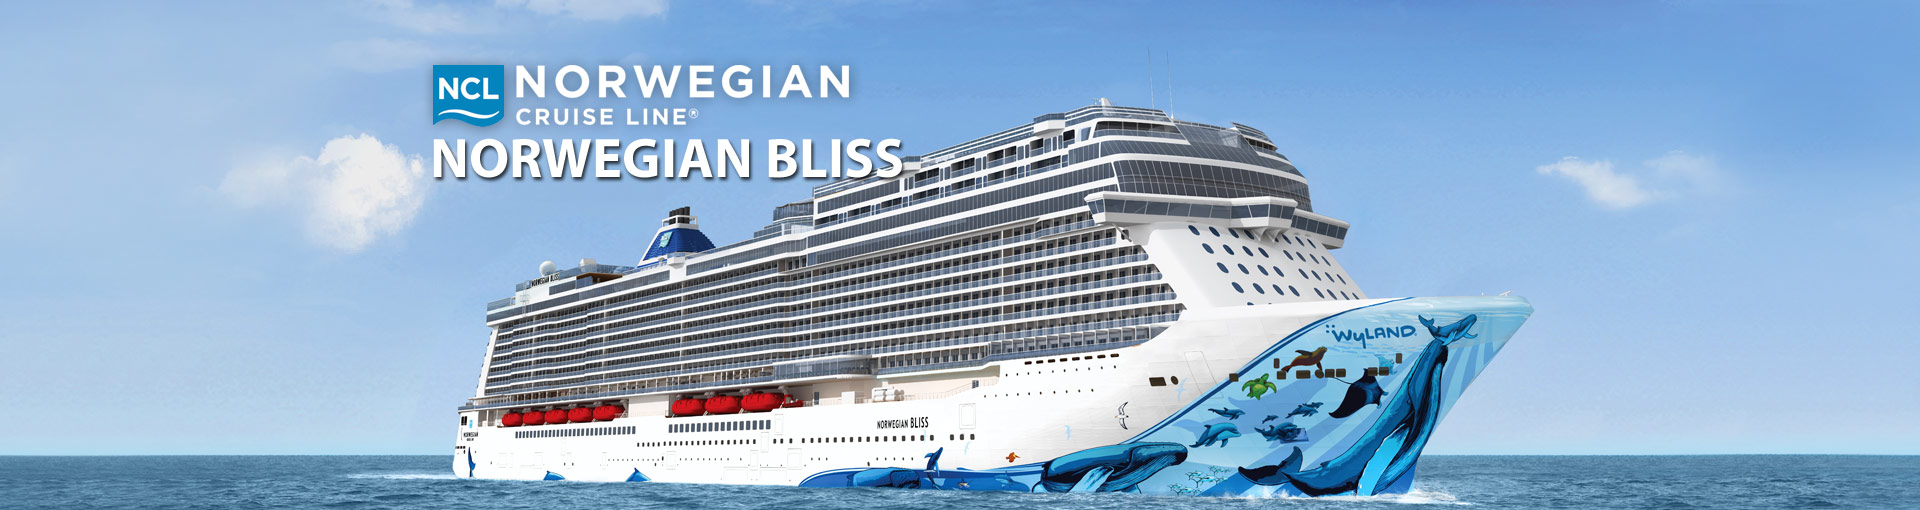 Norwegian Cruise Line Norwegian Bliss Cruise Ship